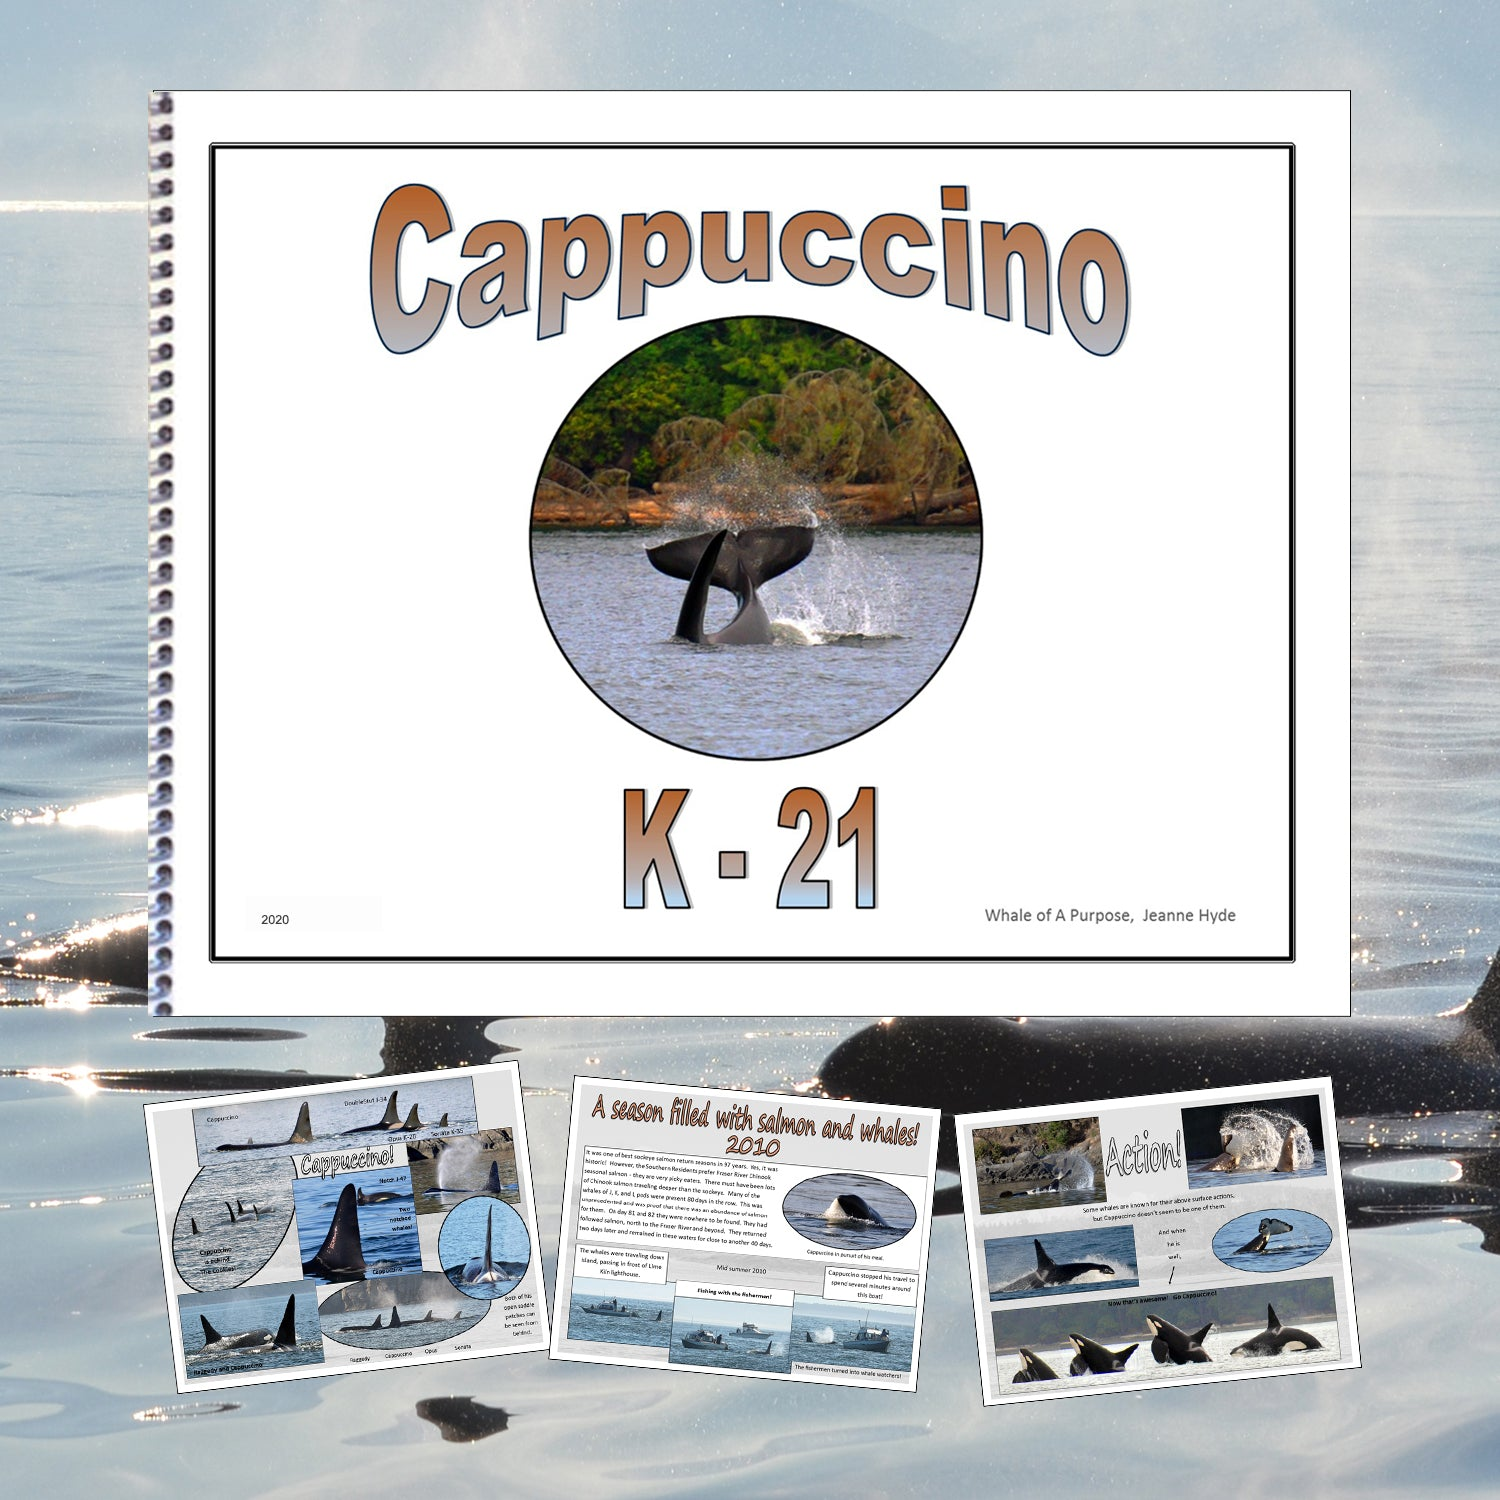 A Glimpse Into the Life of Cappuccino (K-21)